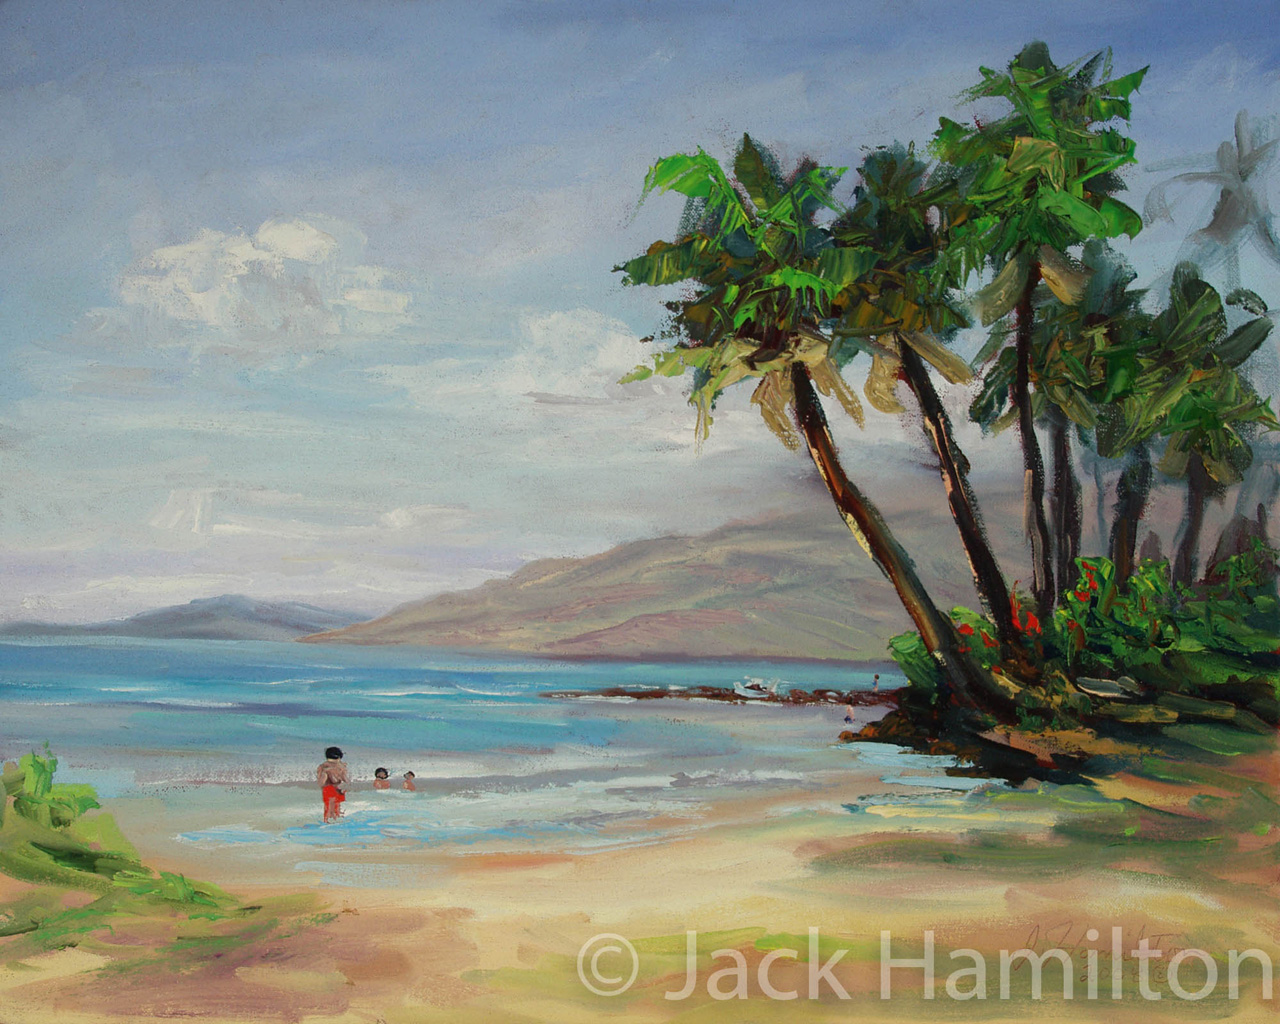 Kelepolepo Beach With Swimmers by Jack Hamilton oil on canvas